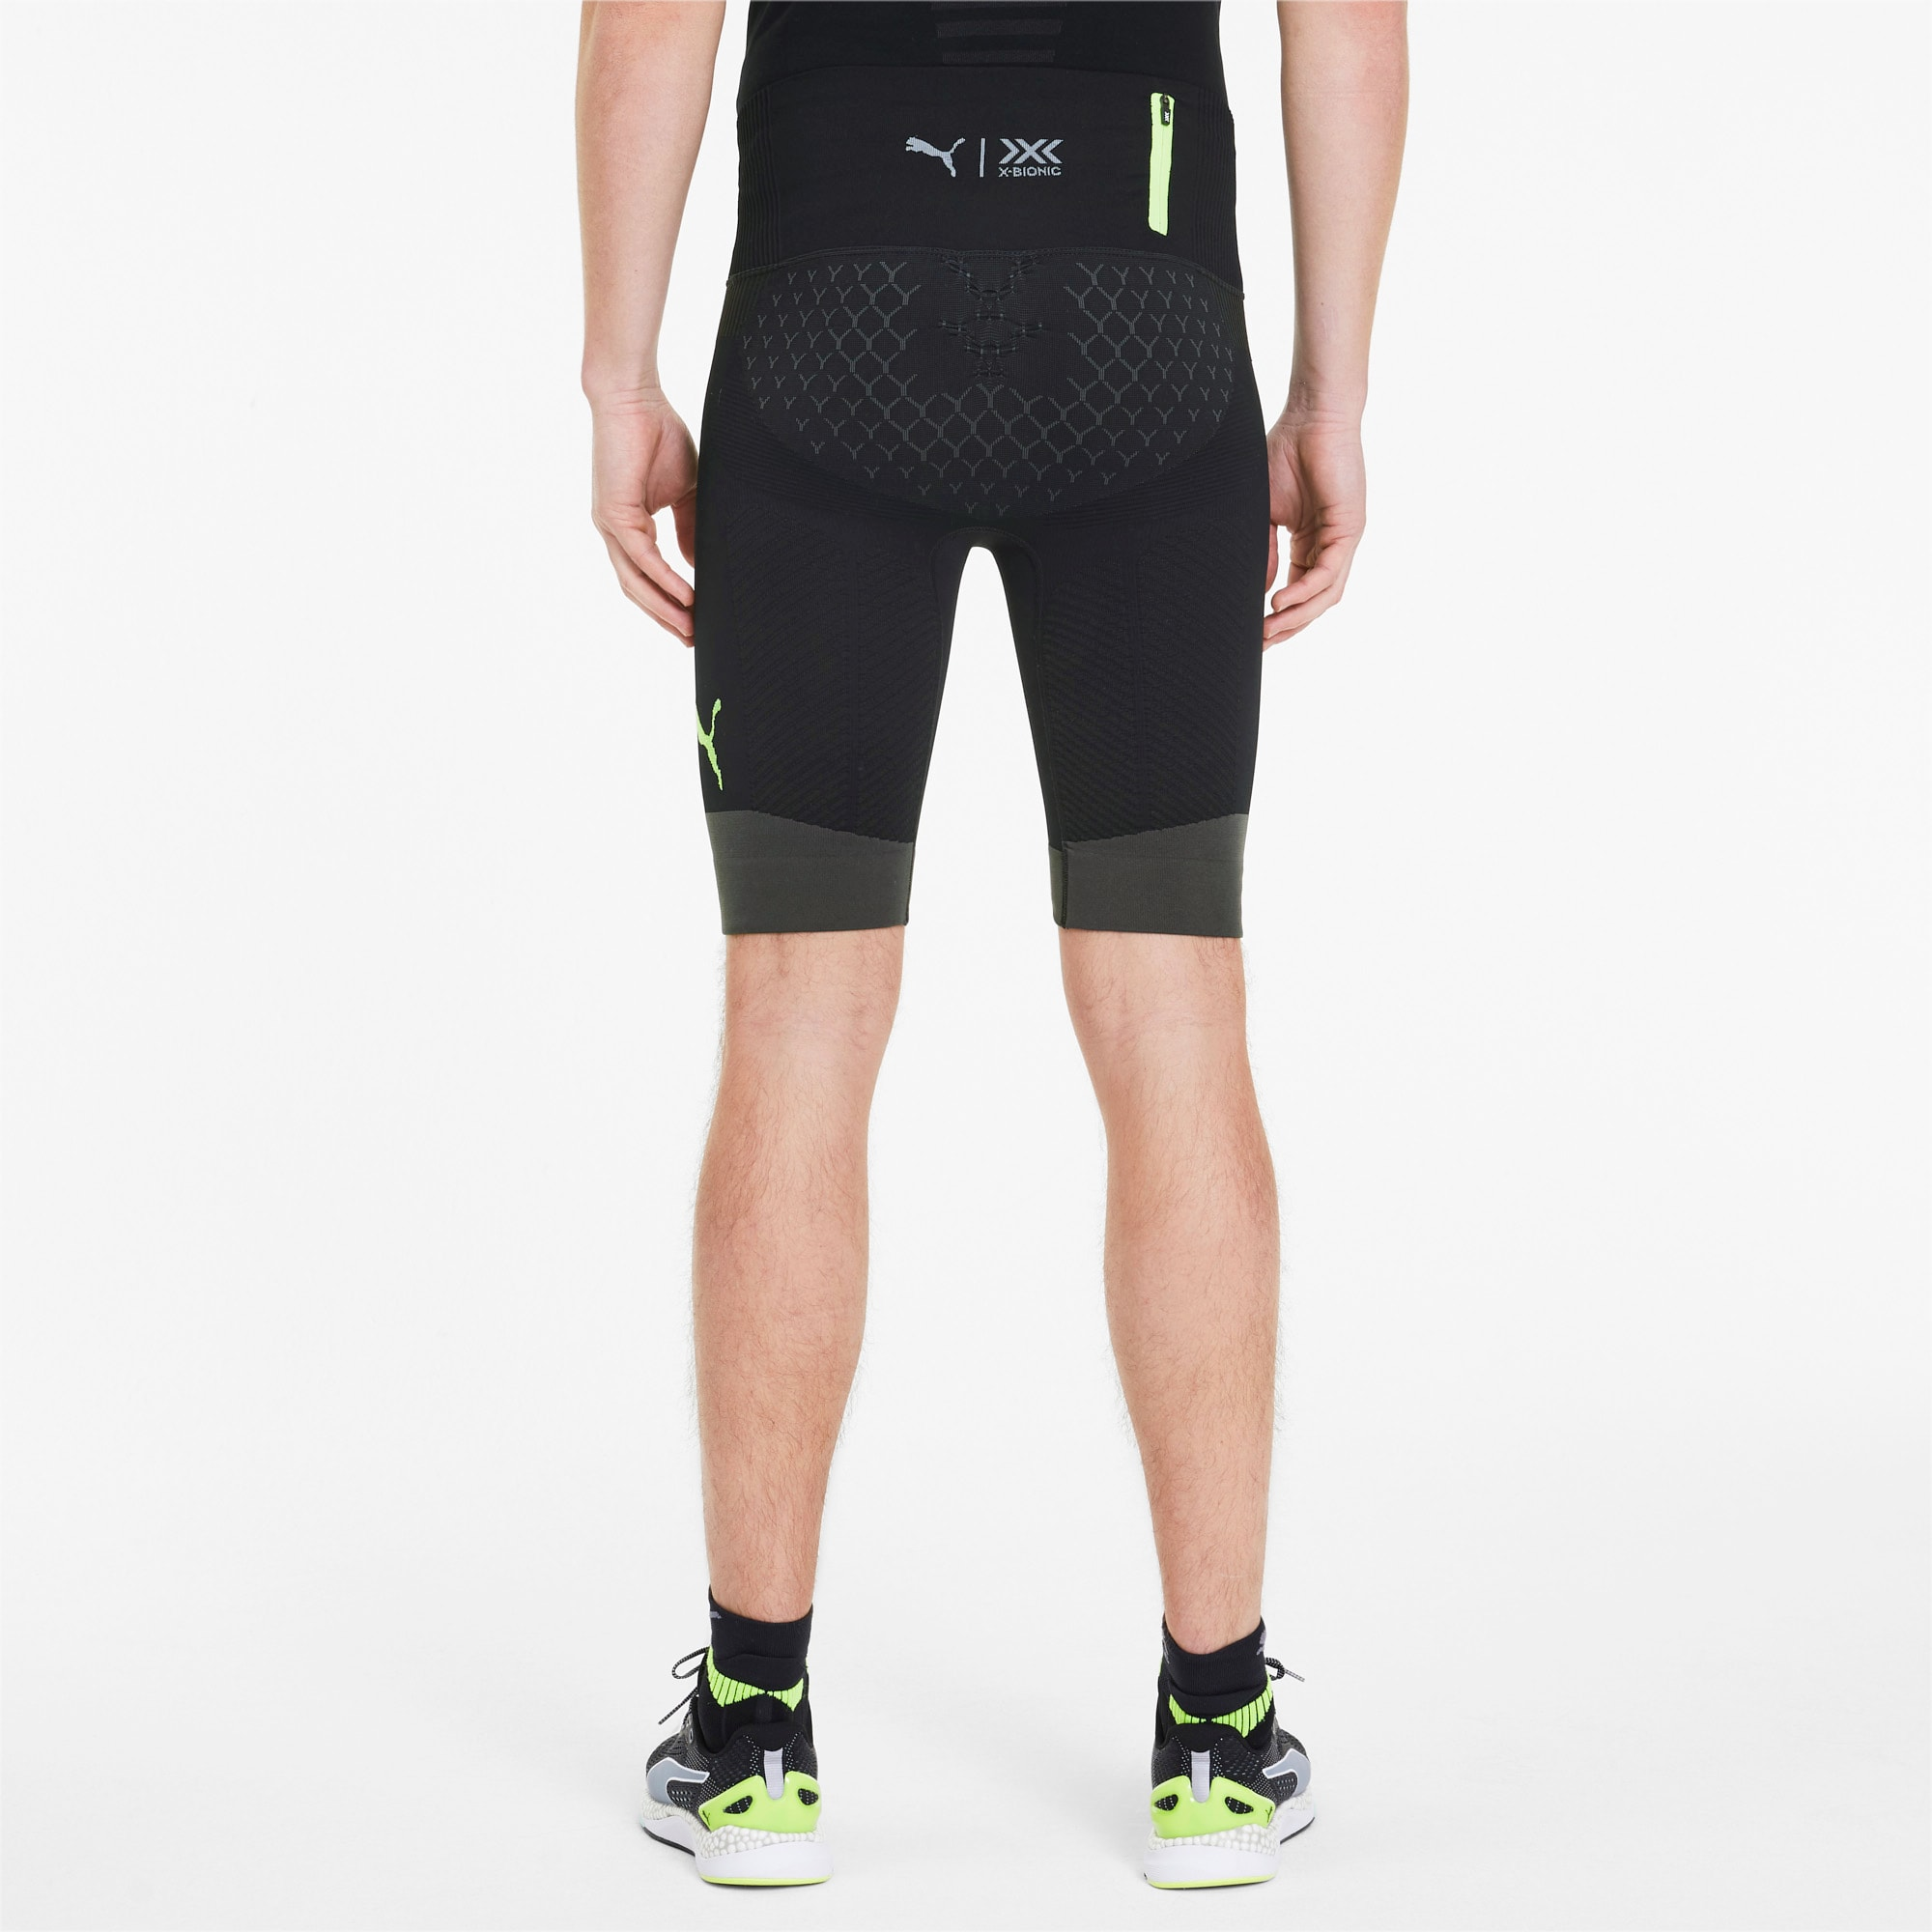 Collant court Running PUMA by X BIONIC Twyce pour homme